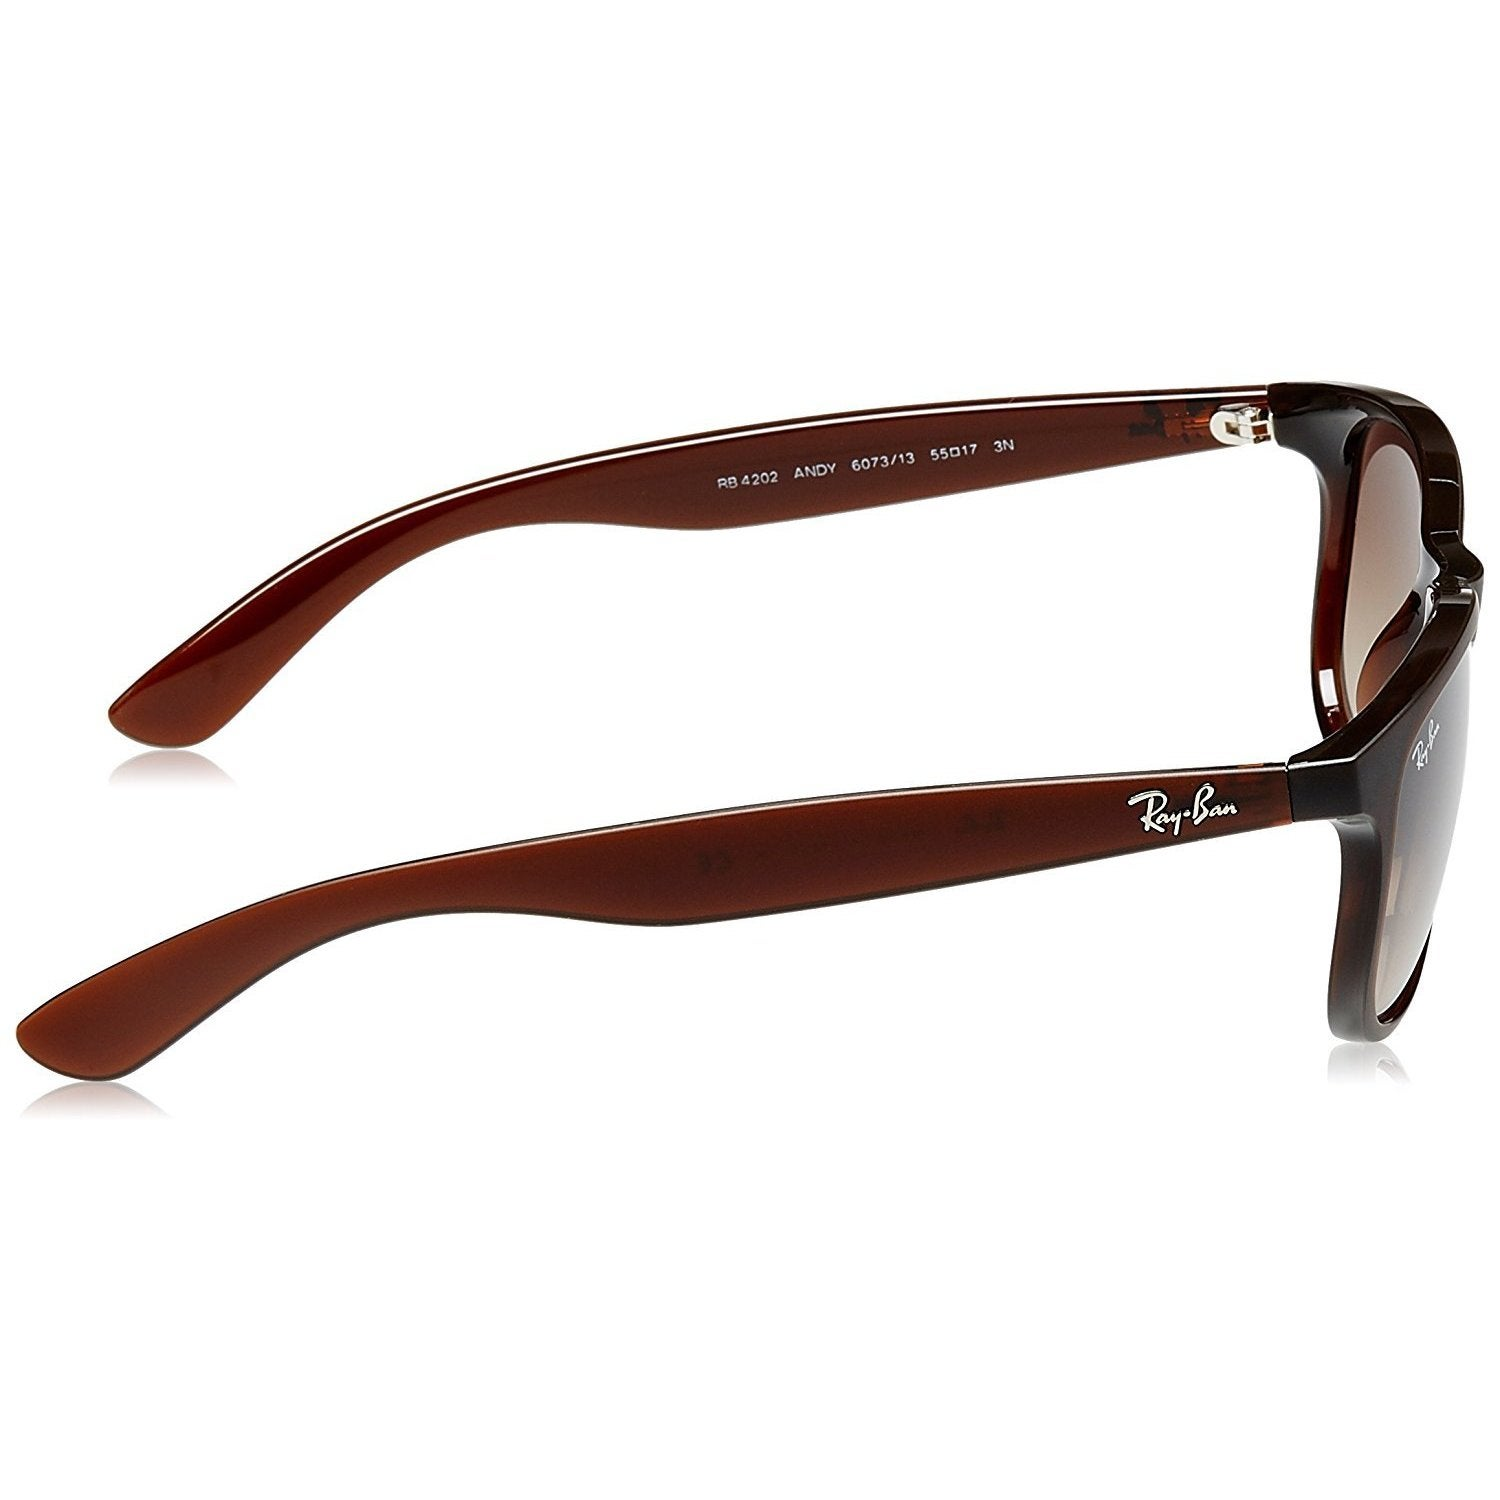 68b5be42ff Shop Ray-Ban RB4202 607313 Andy Brown Frame Brown Gradient 55mm Lens  Sunglasses - Free Shipping Today - Overstock - 14339068